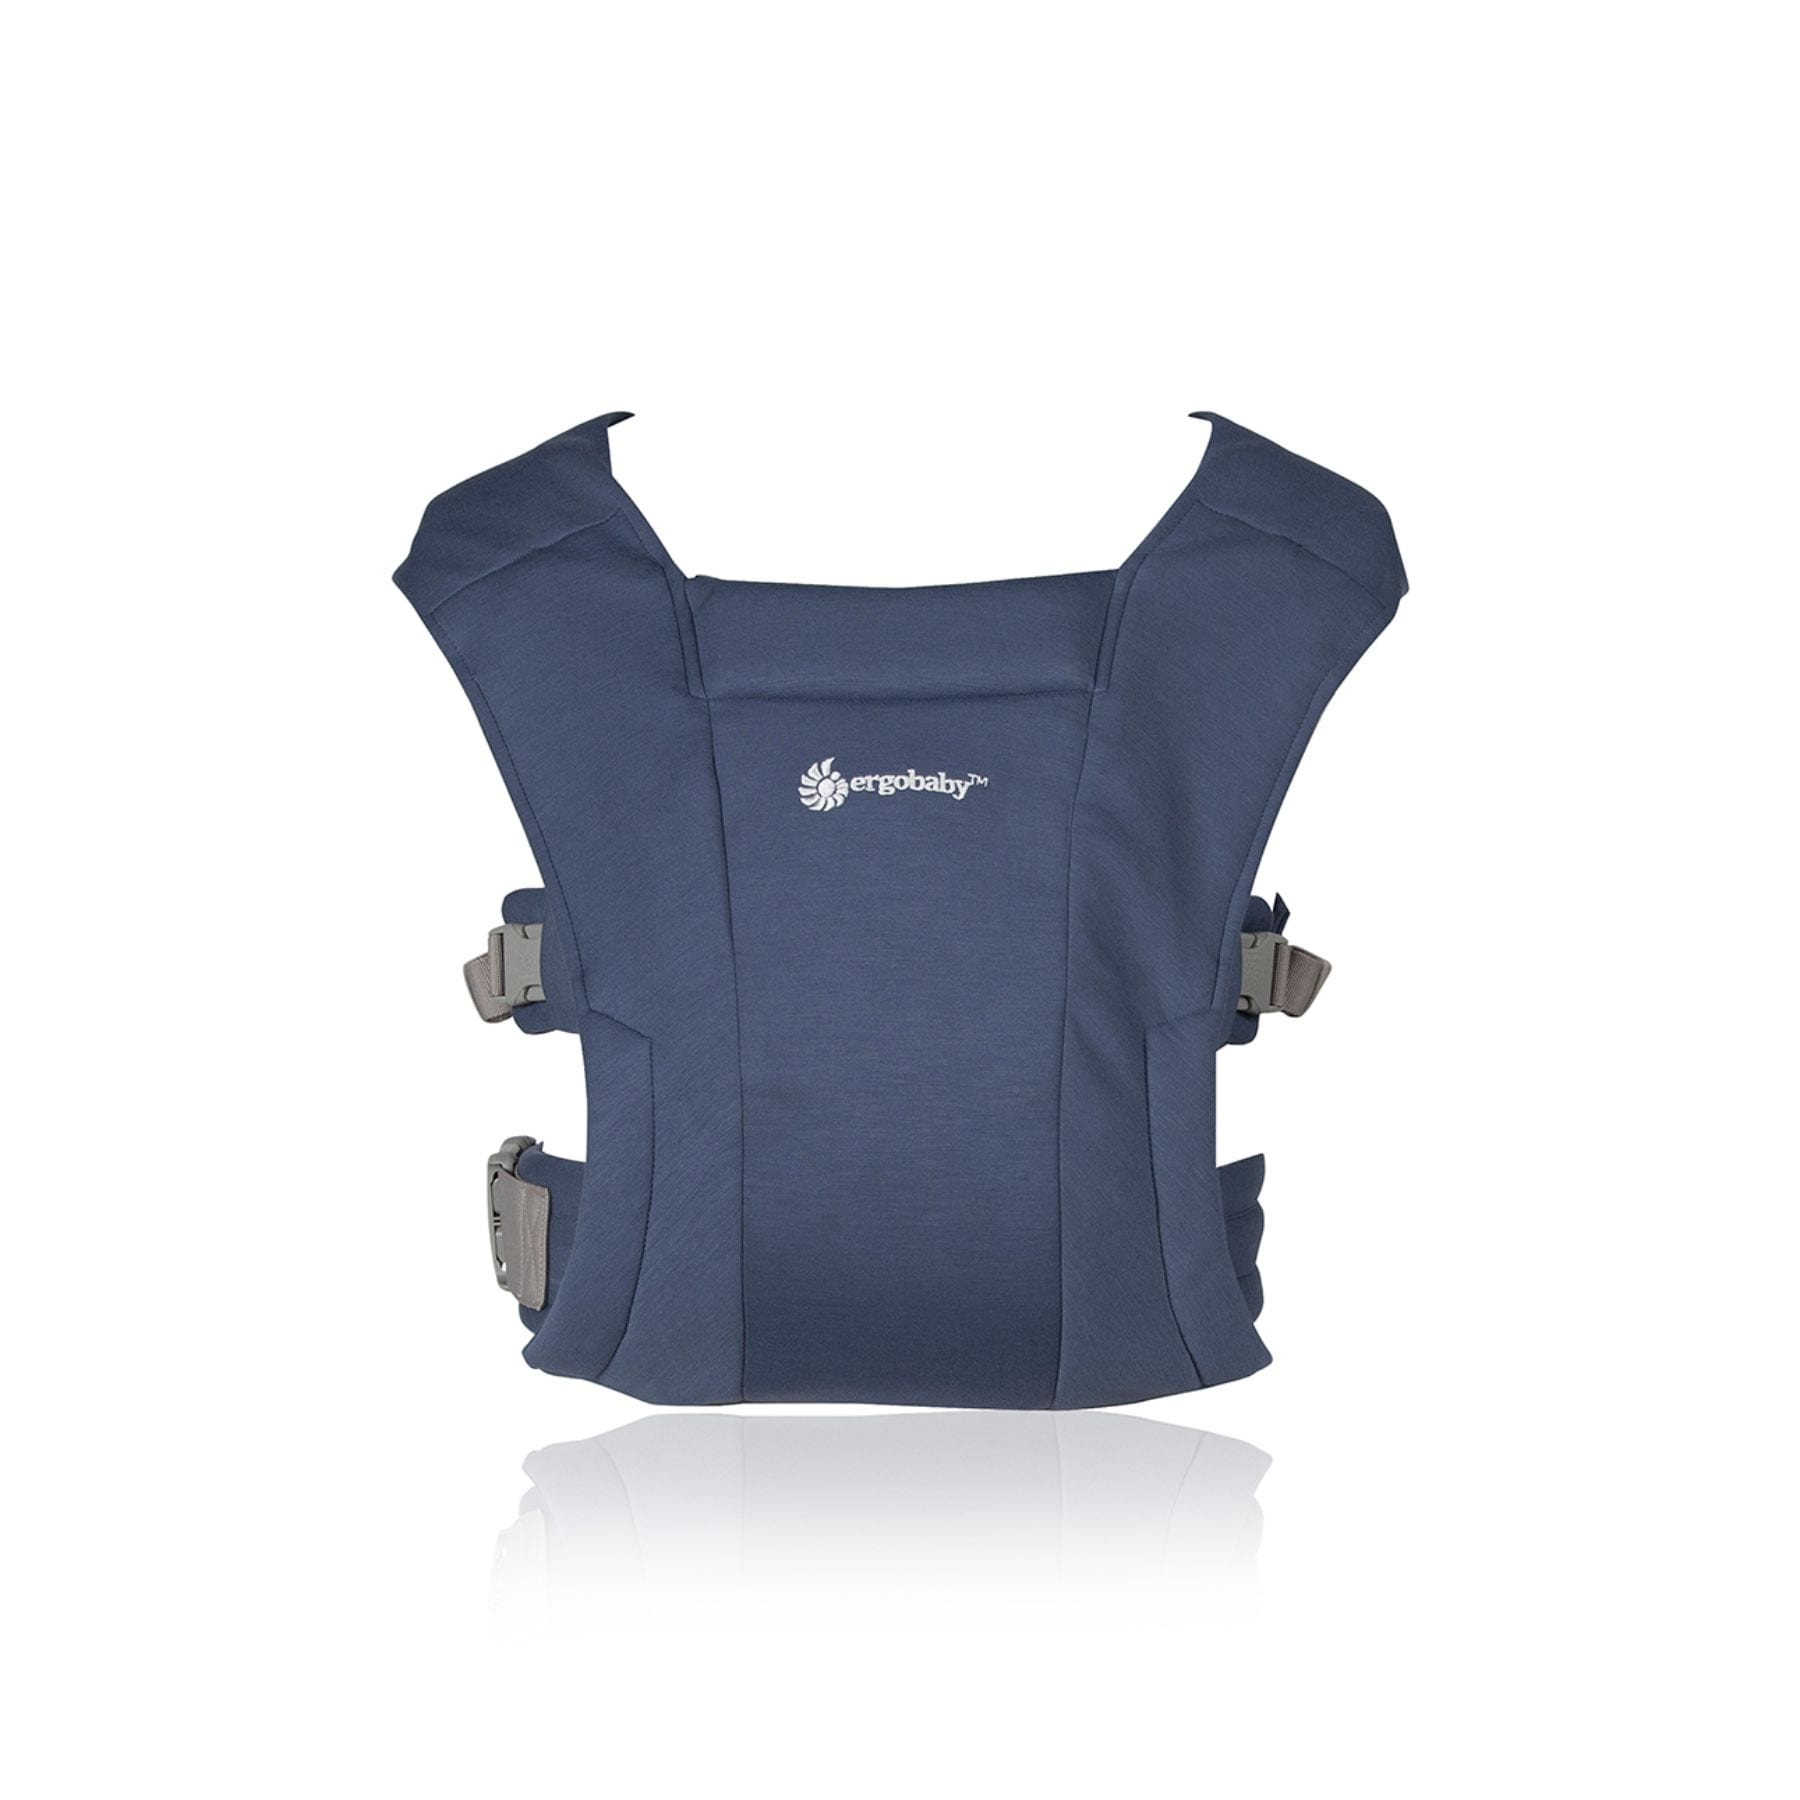 Ergo baby Embrace Carrier - Soft Navy